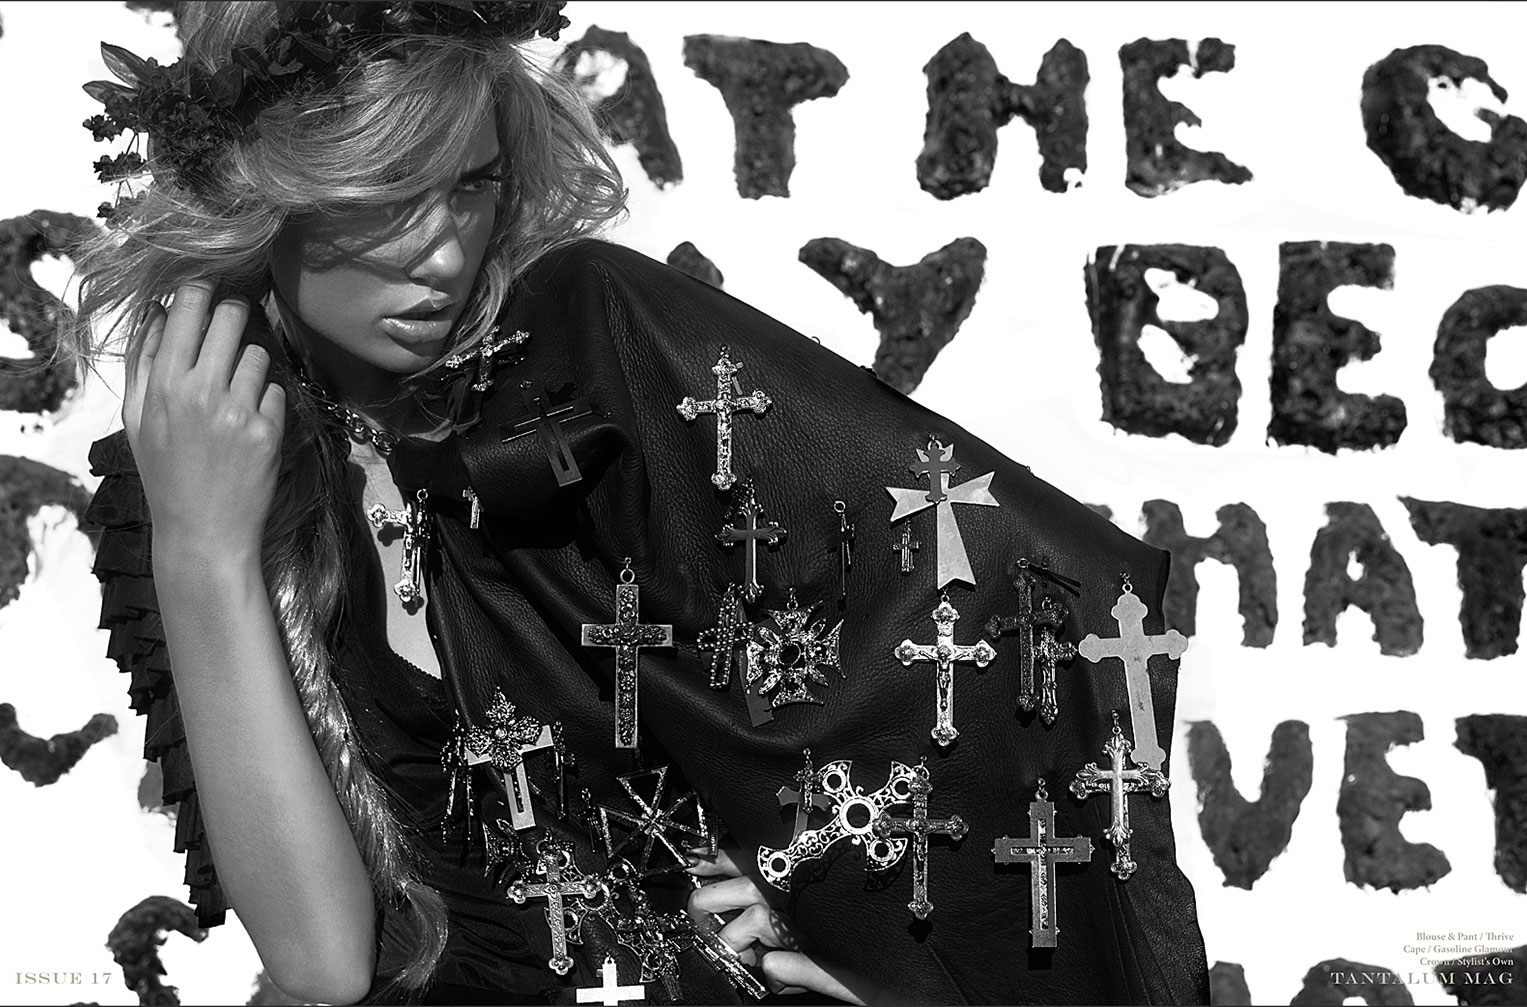 The Salvation of Eve / Klara Kassman by Bryan Kong / Tantalum Magazine january 2013